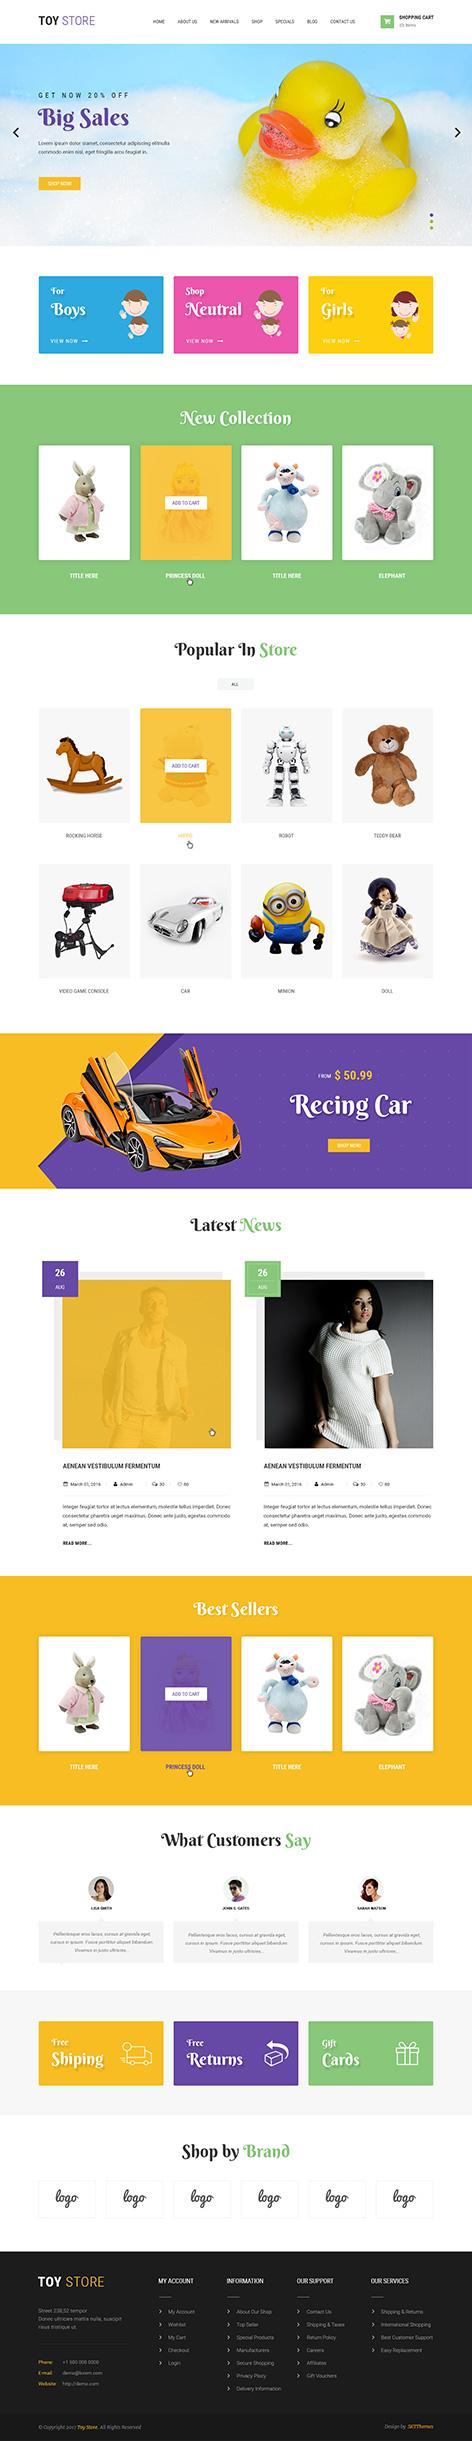 toy store wordpress theme1 - Toy Store